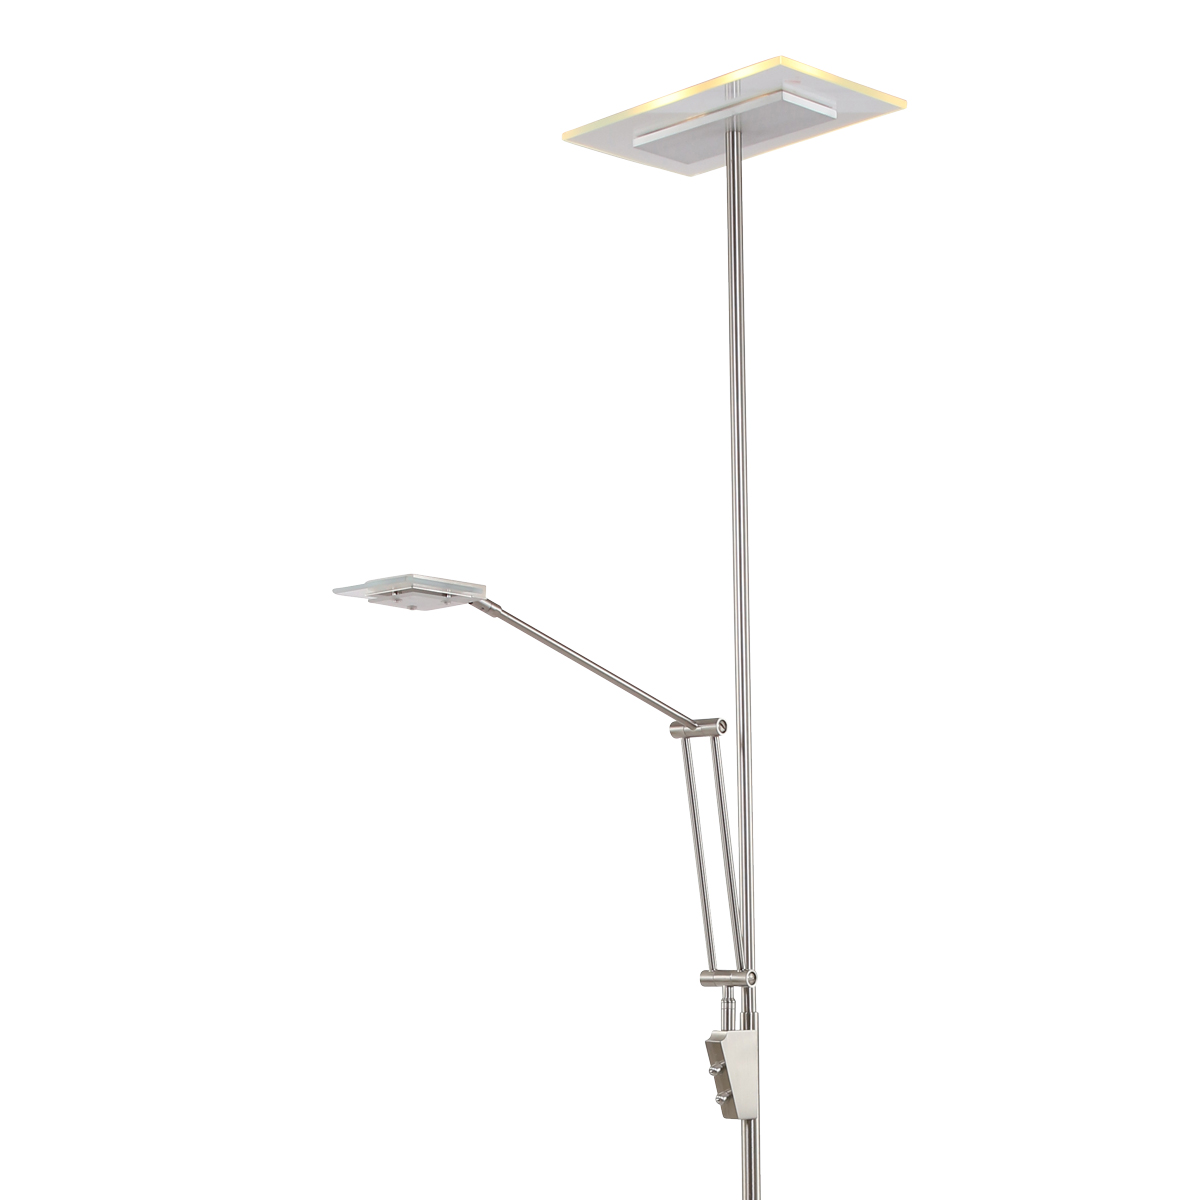 Stehlampe Led Dimmbar Stehlampen Led Dimmbar Best U Stehleuchte Led Manaus With